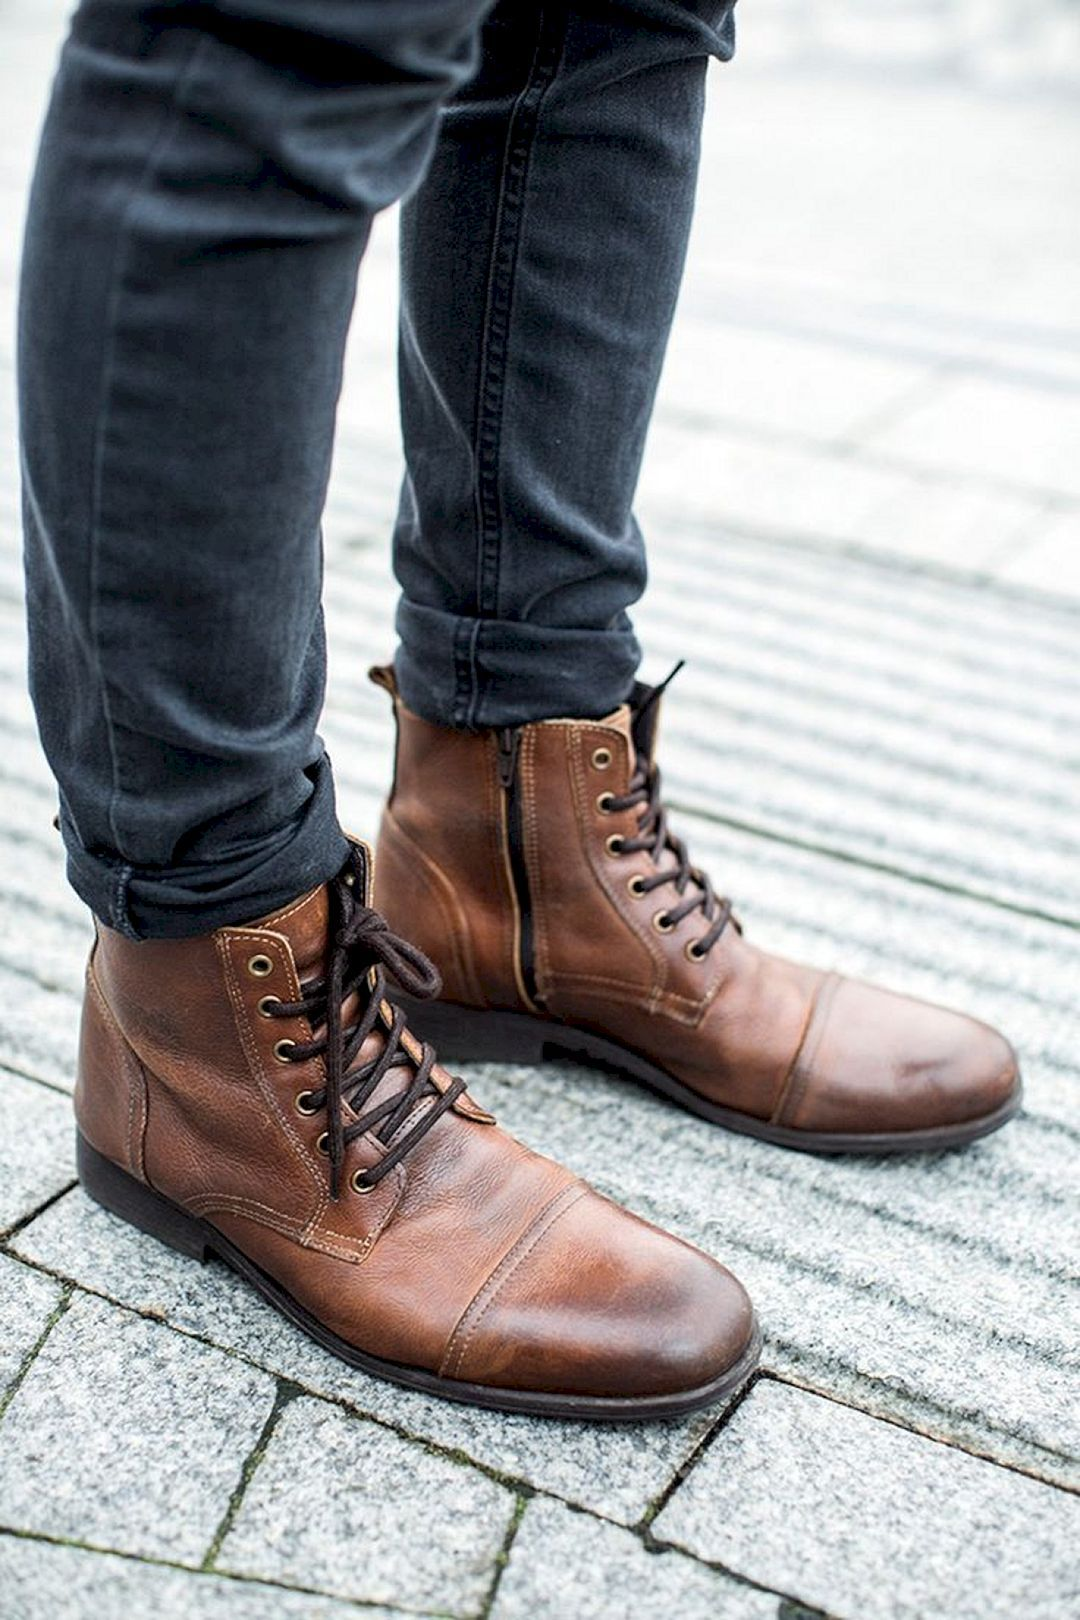 Pin By Sudith On Mens Boots Style Pinterest Fashion Shoes And